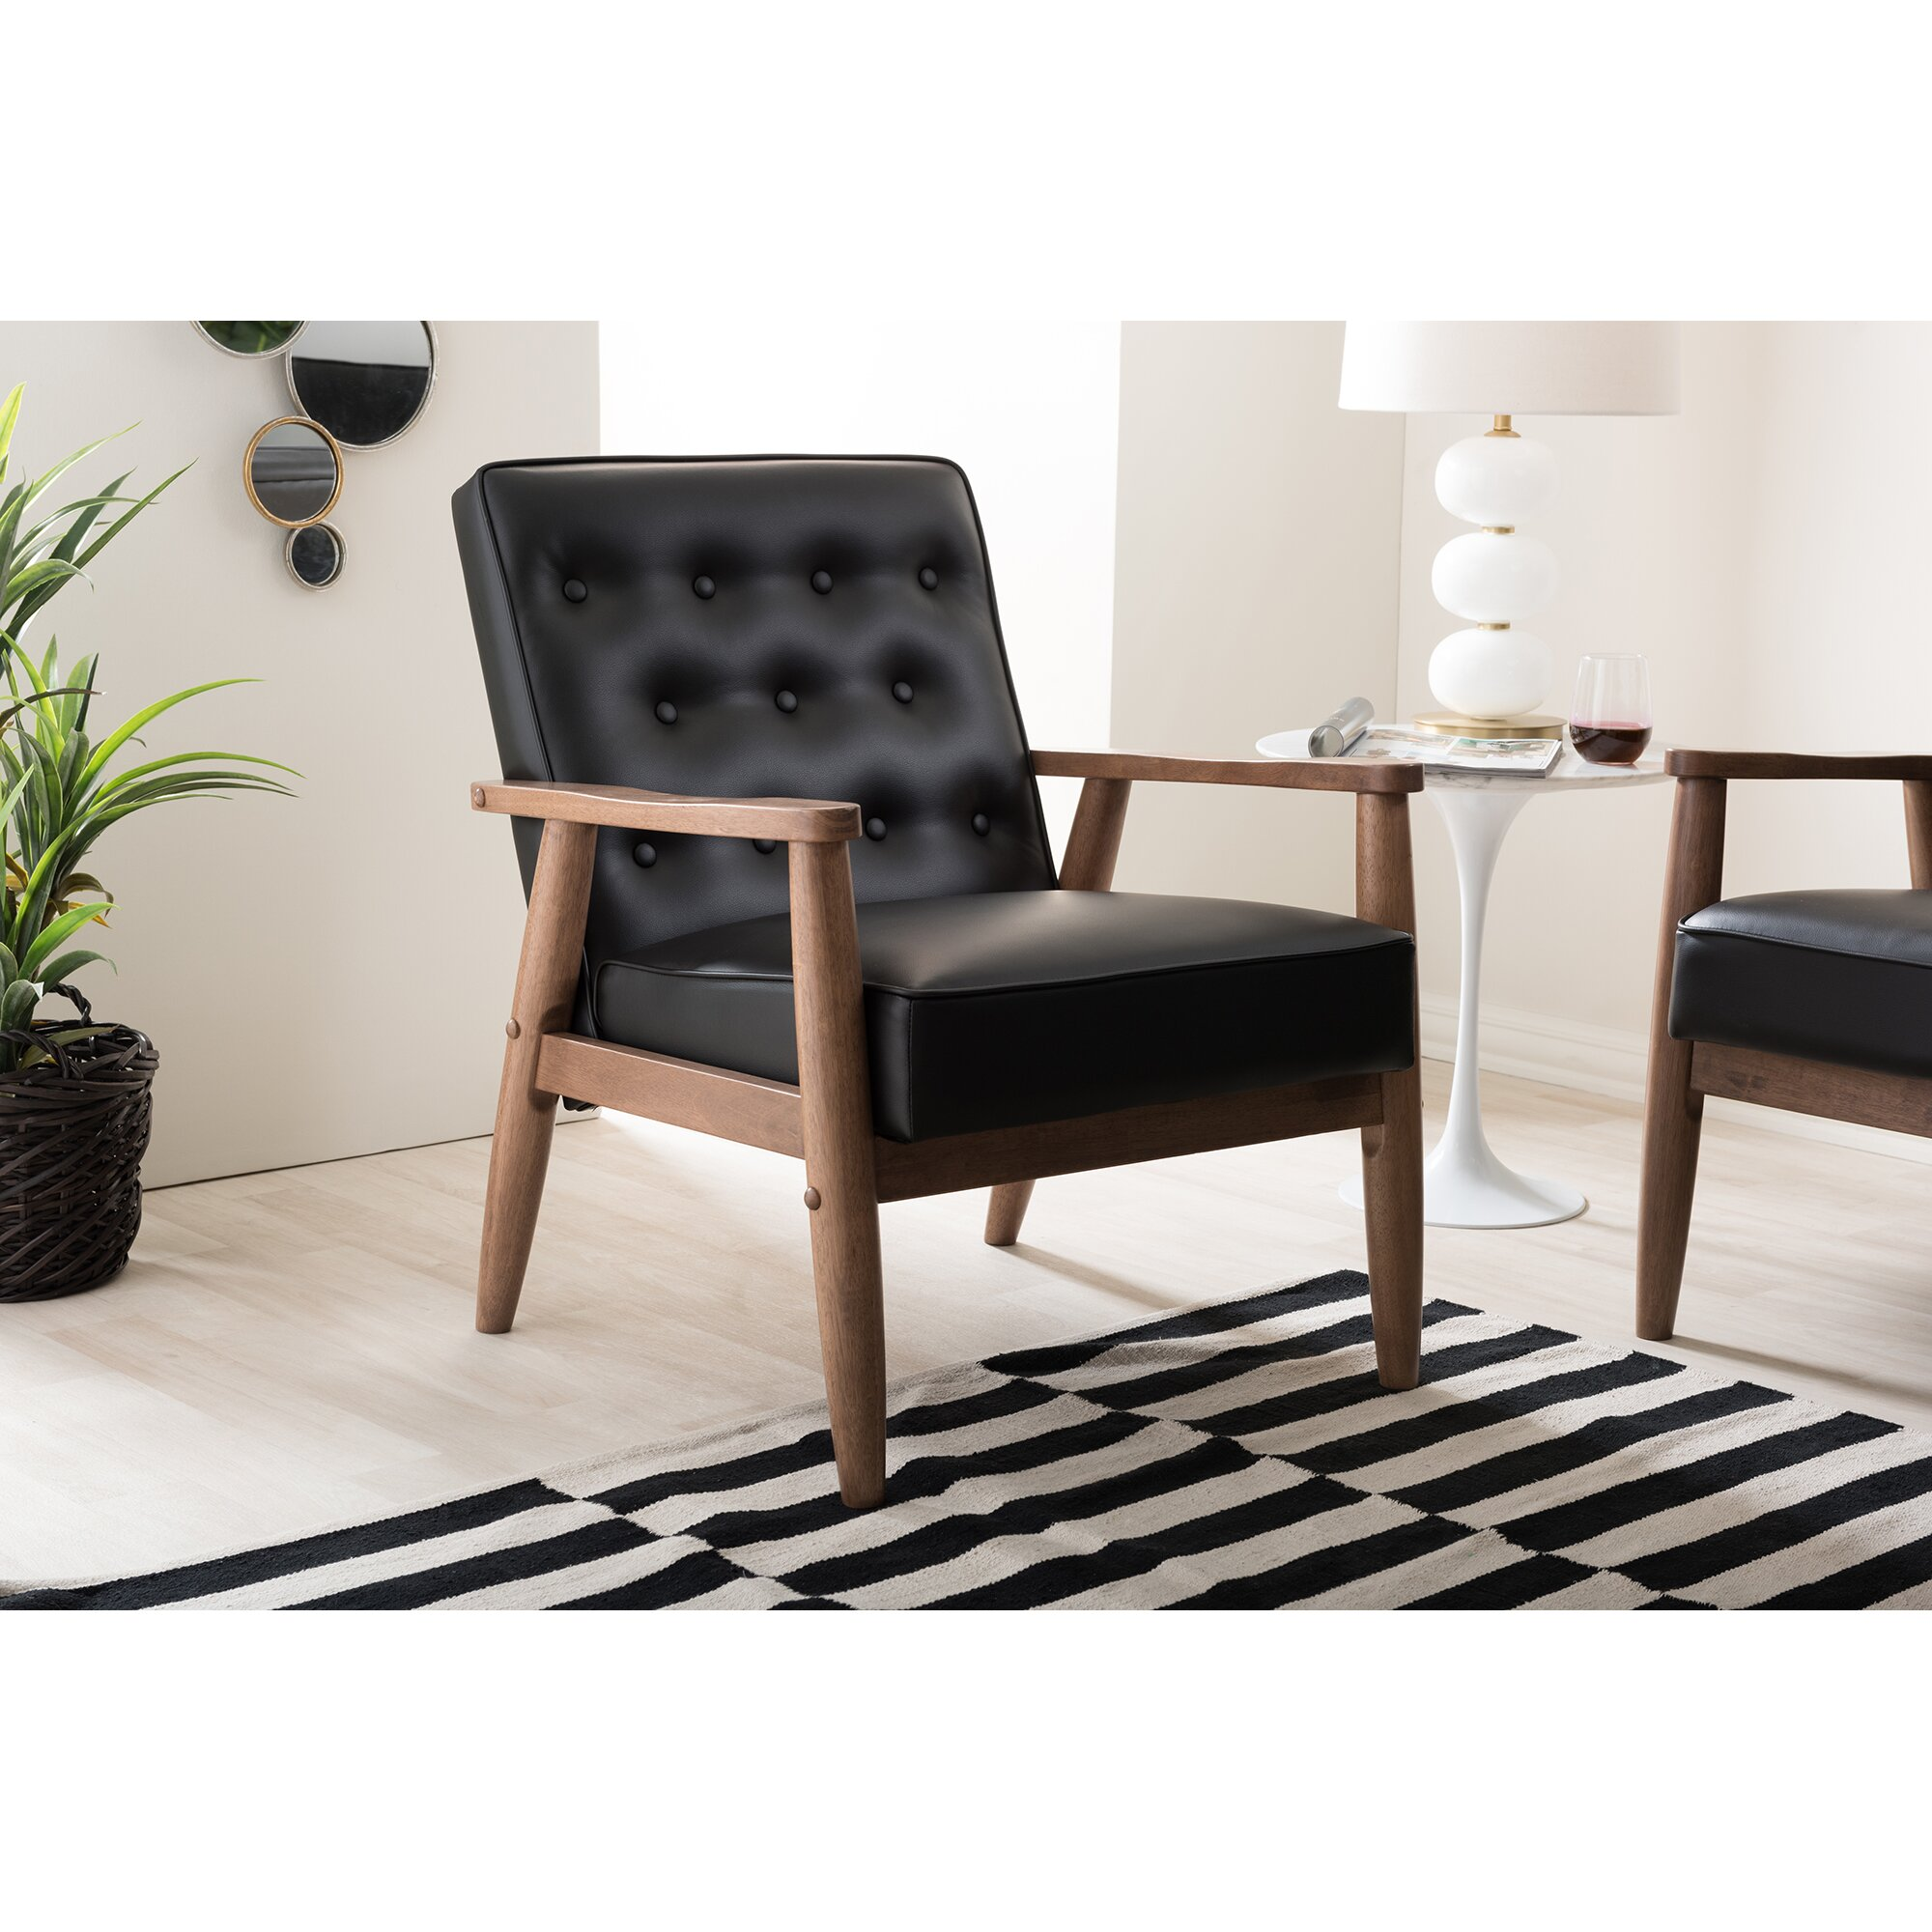 baxton studio lounge chair wayfair. Black Bedroom Furniture Sets. Home Design Ideas